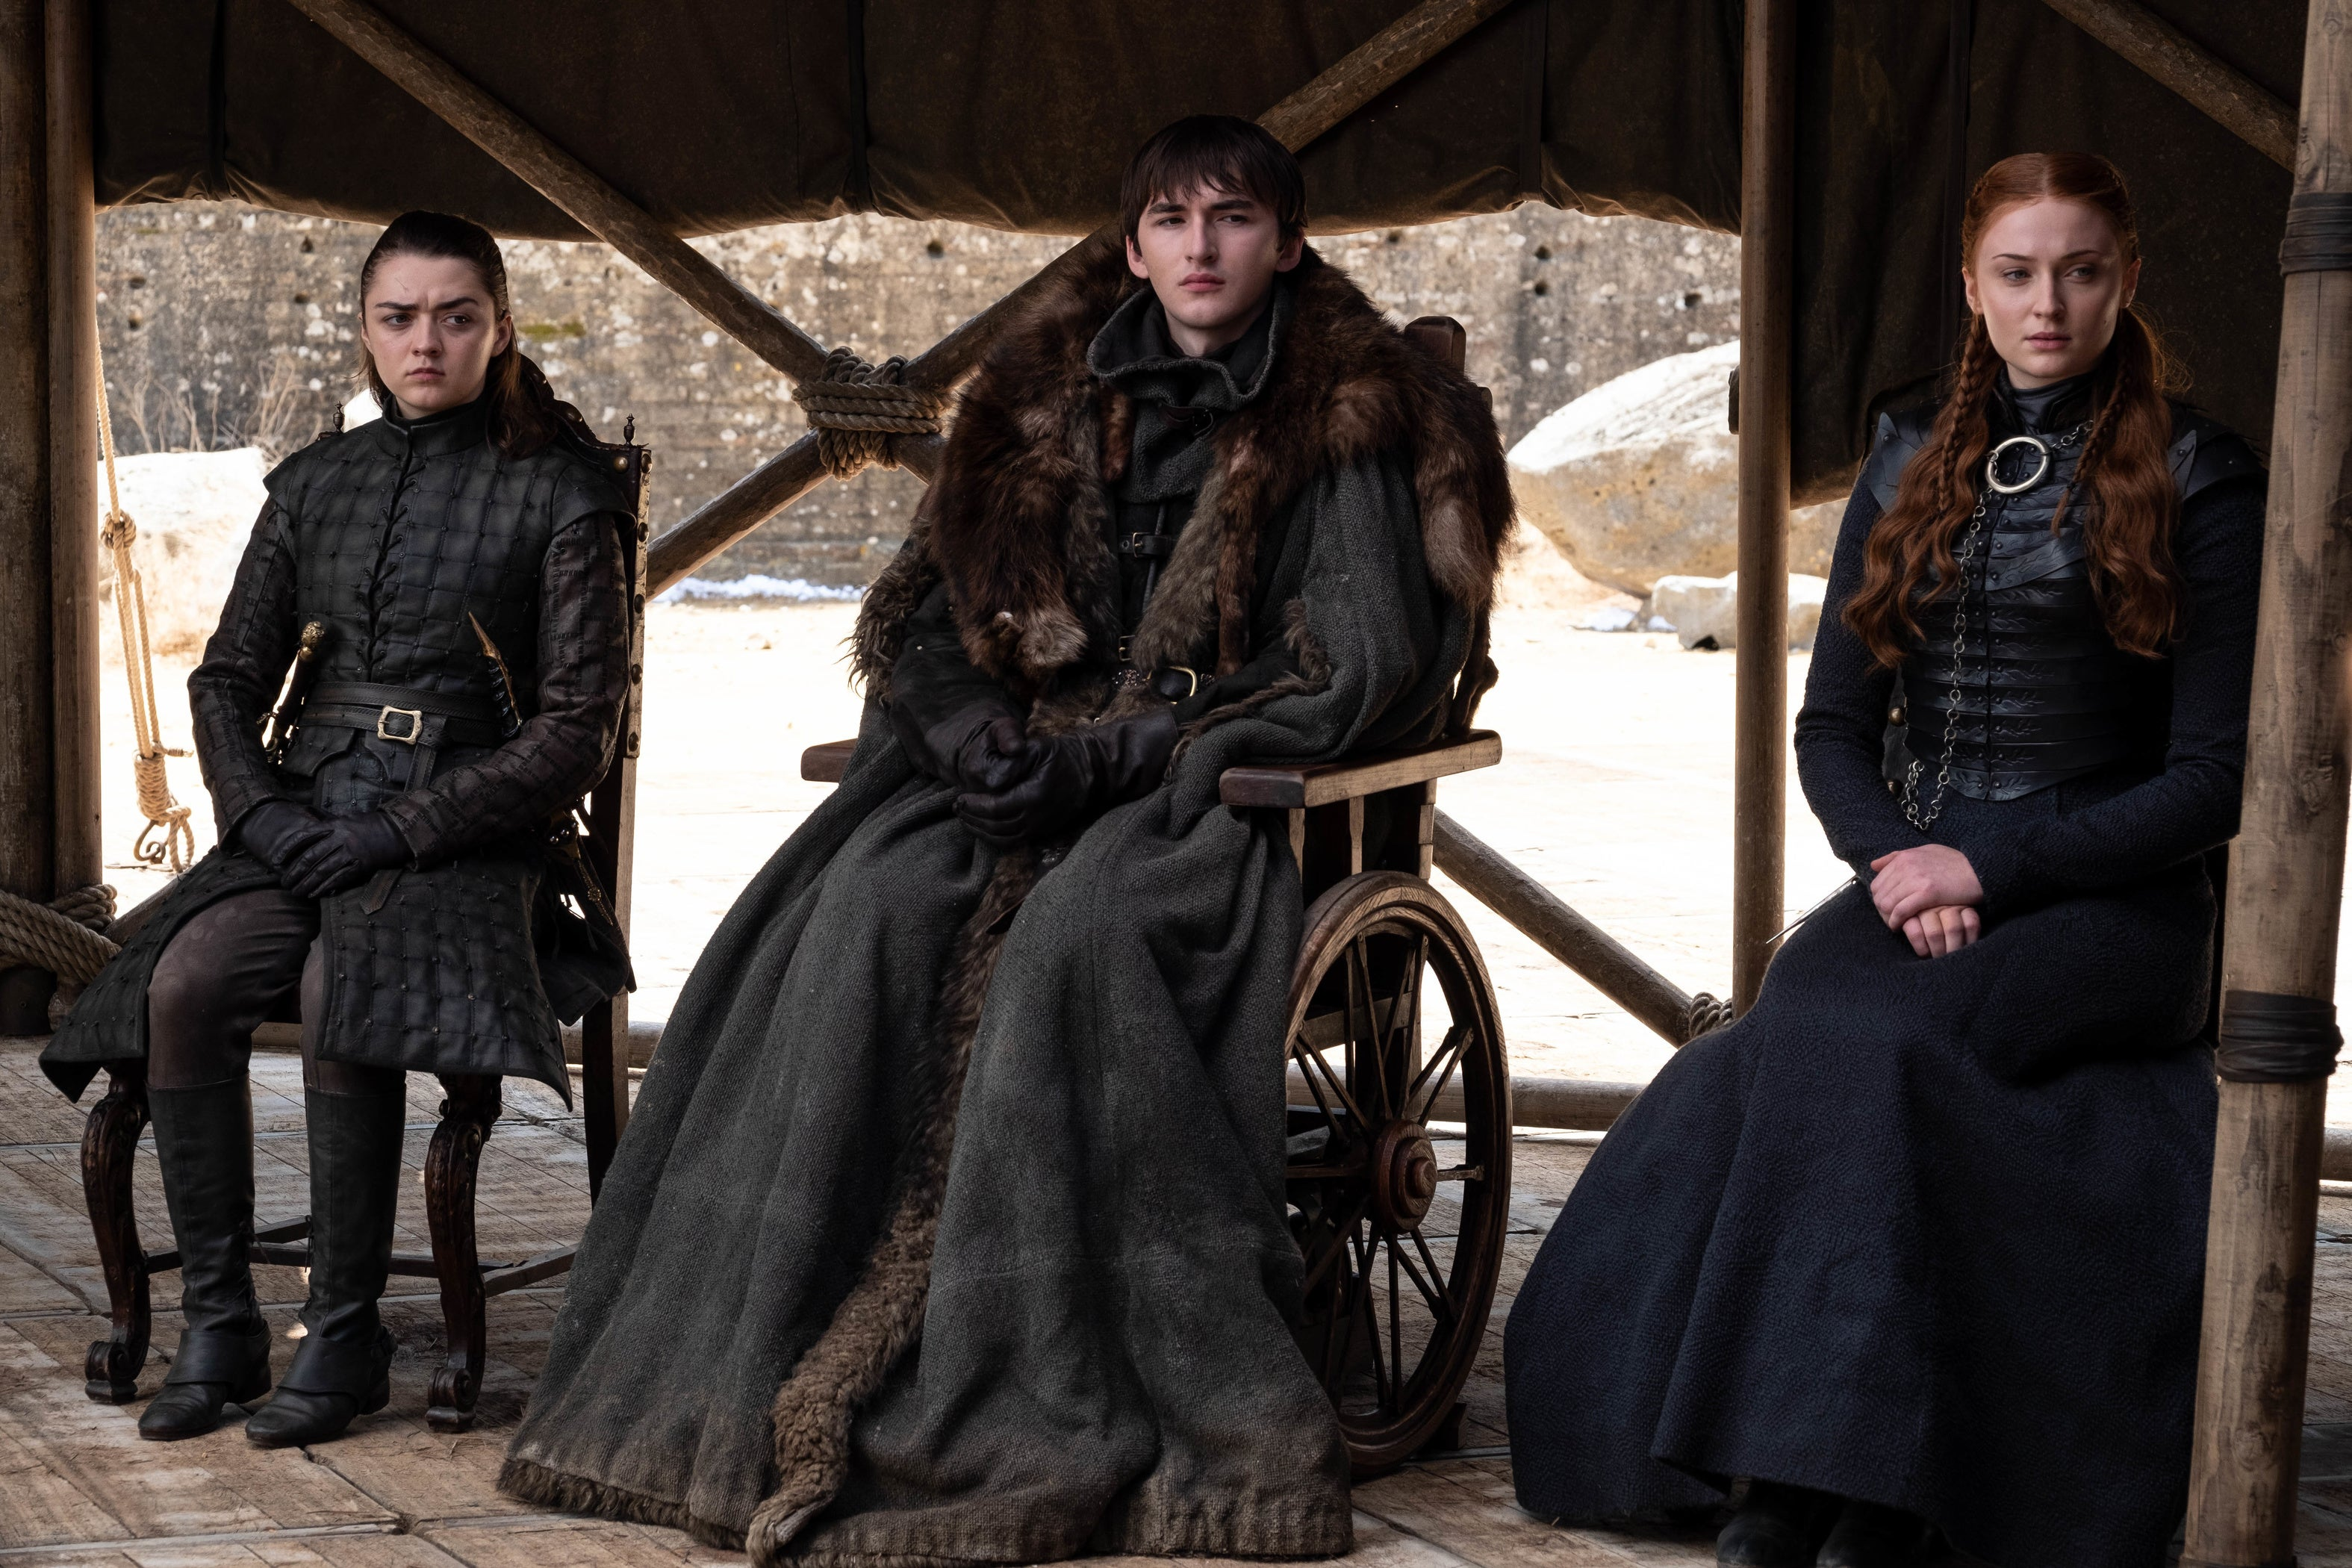 slate.com - Dan Kois - Game of Thrones' Finale Was Actually Pretty Good